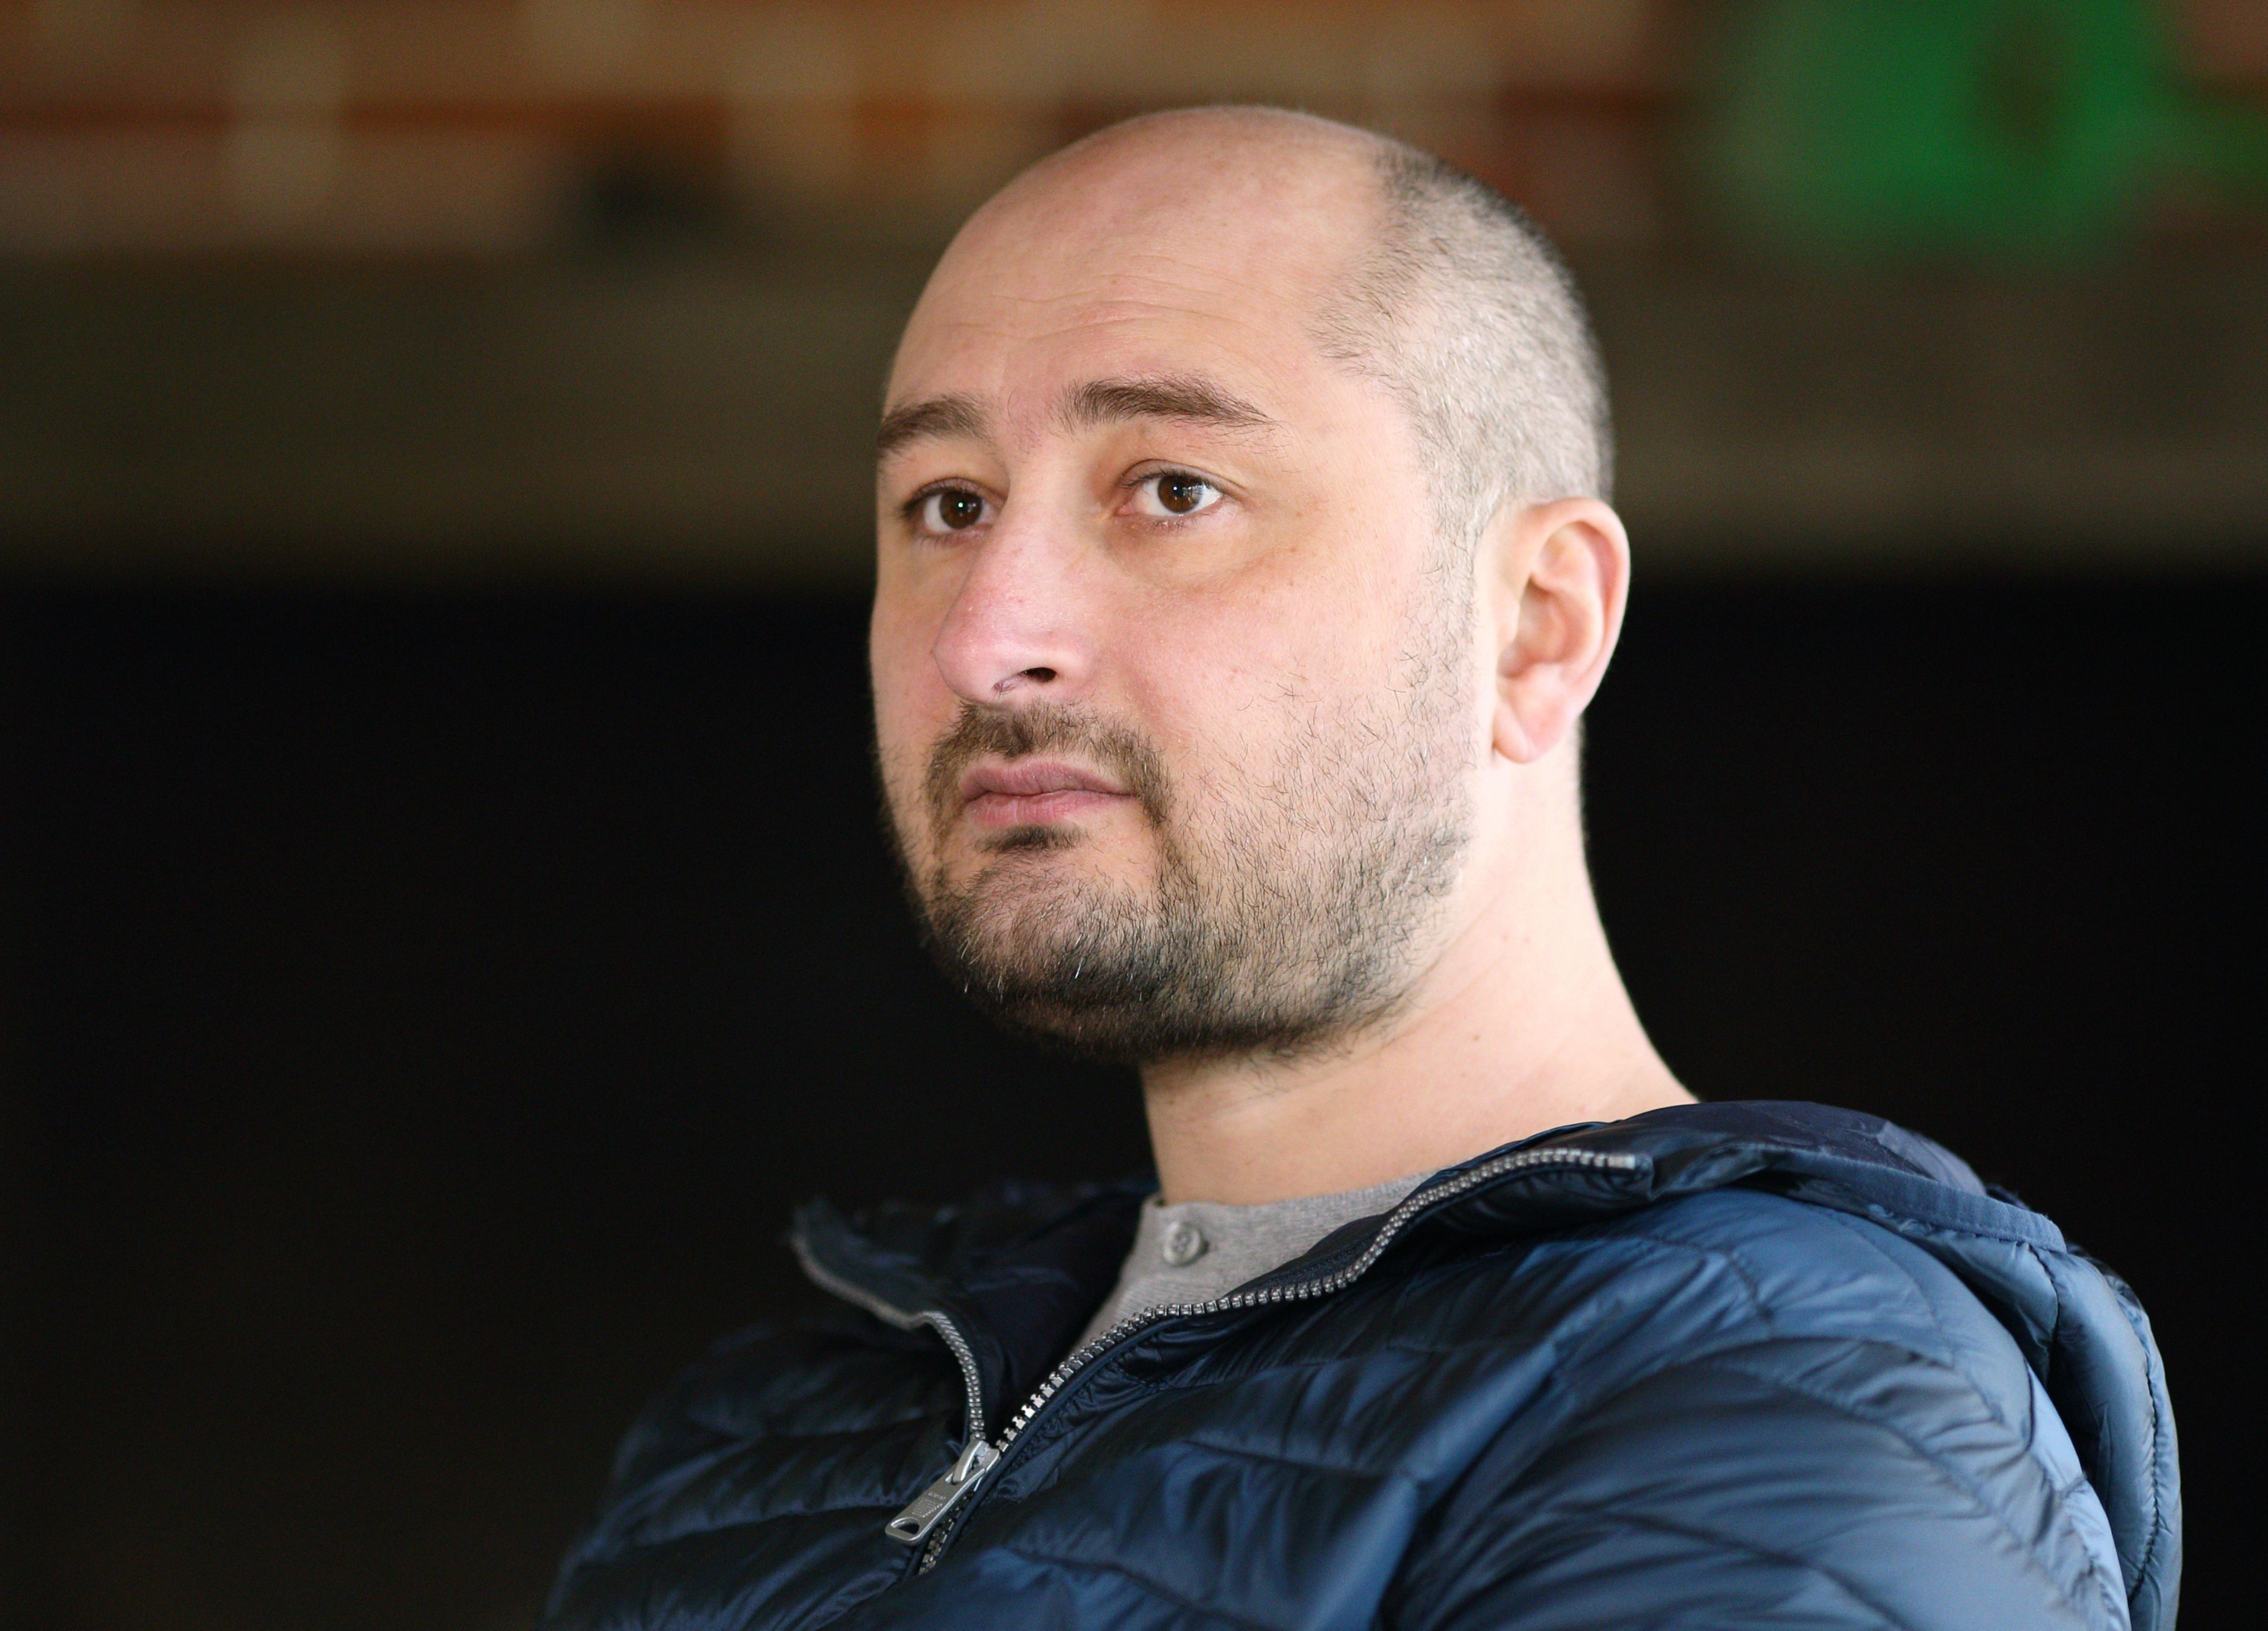 A file picture provided on May 29, 2018 shows Russian journalist Arkadiy Babchenko on November 14, 2017 in Kiev. - A Russian journalist who wrote for opposition media was shot dead on May 28, 2018 in Kiev, Ukrainian police said. Arkadi Babchenko was shot in his apartment building in the Ukrainian capital. (Photo by Vitaliy NOSACH / AFP)        (Photo credit should read VITALIY NOSACH/AFP/Getty Images)